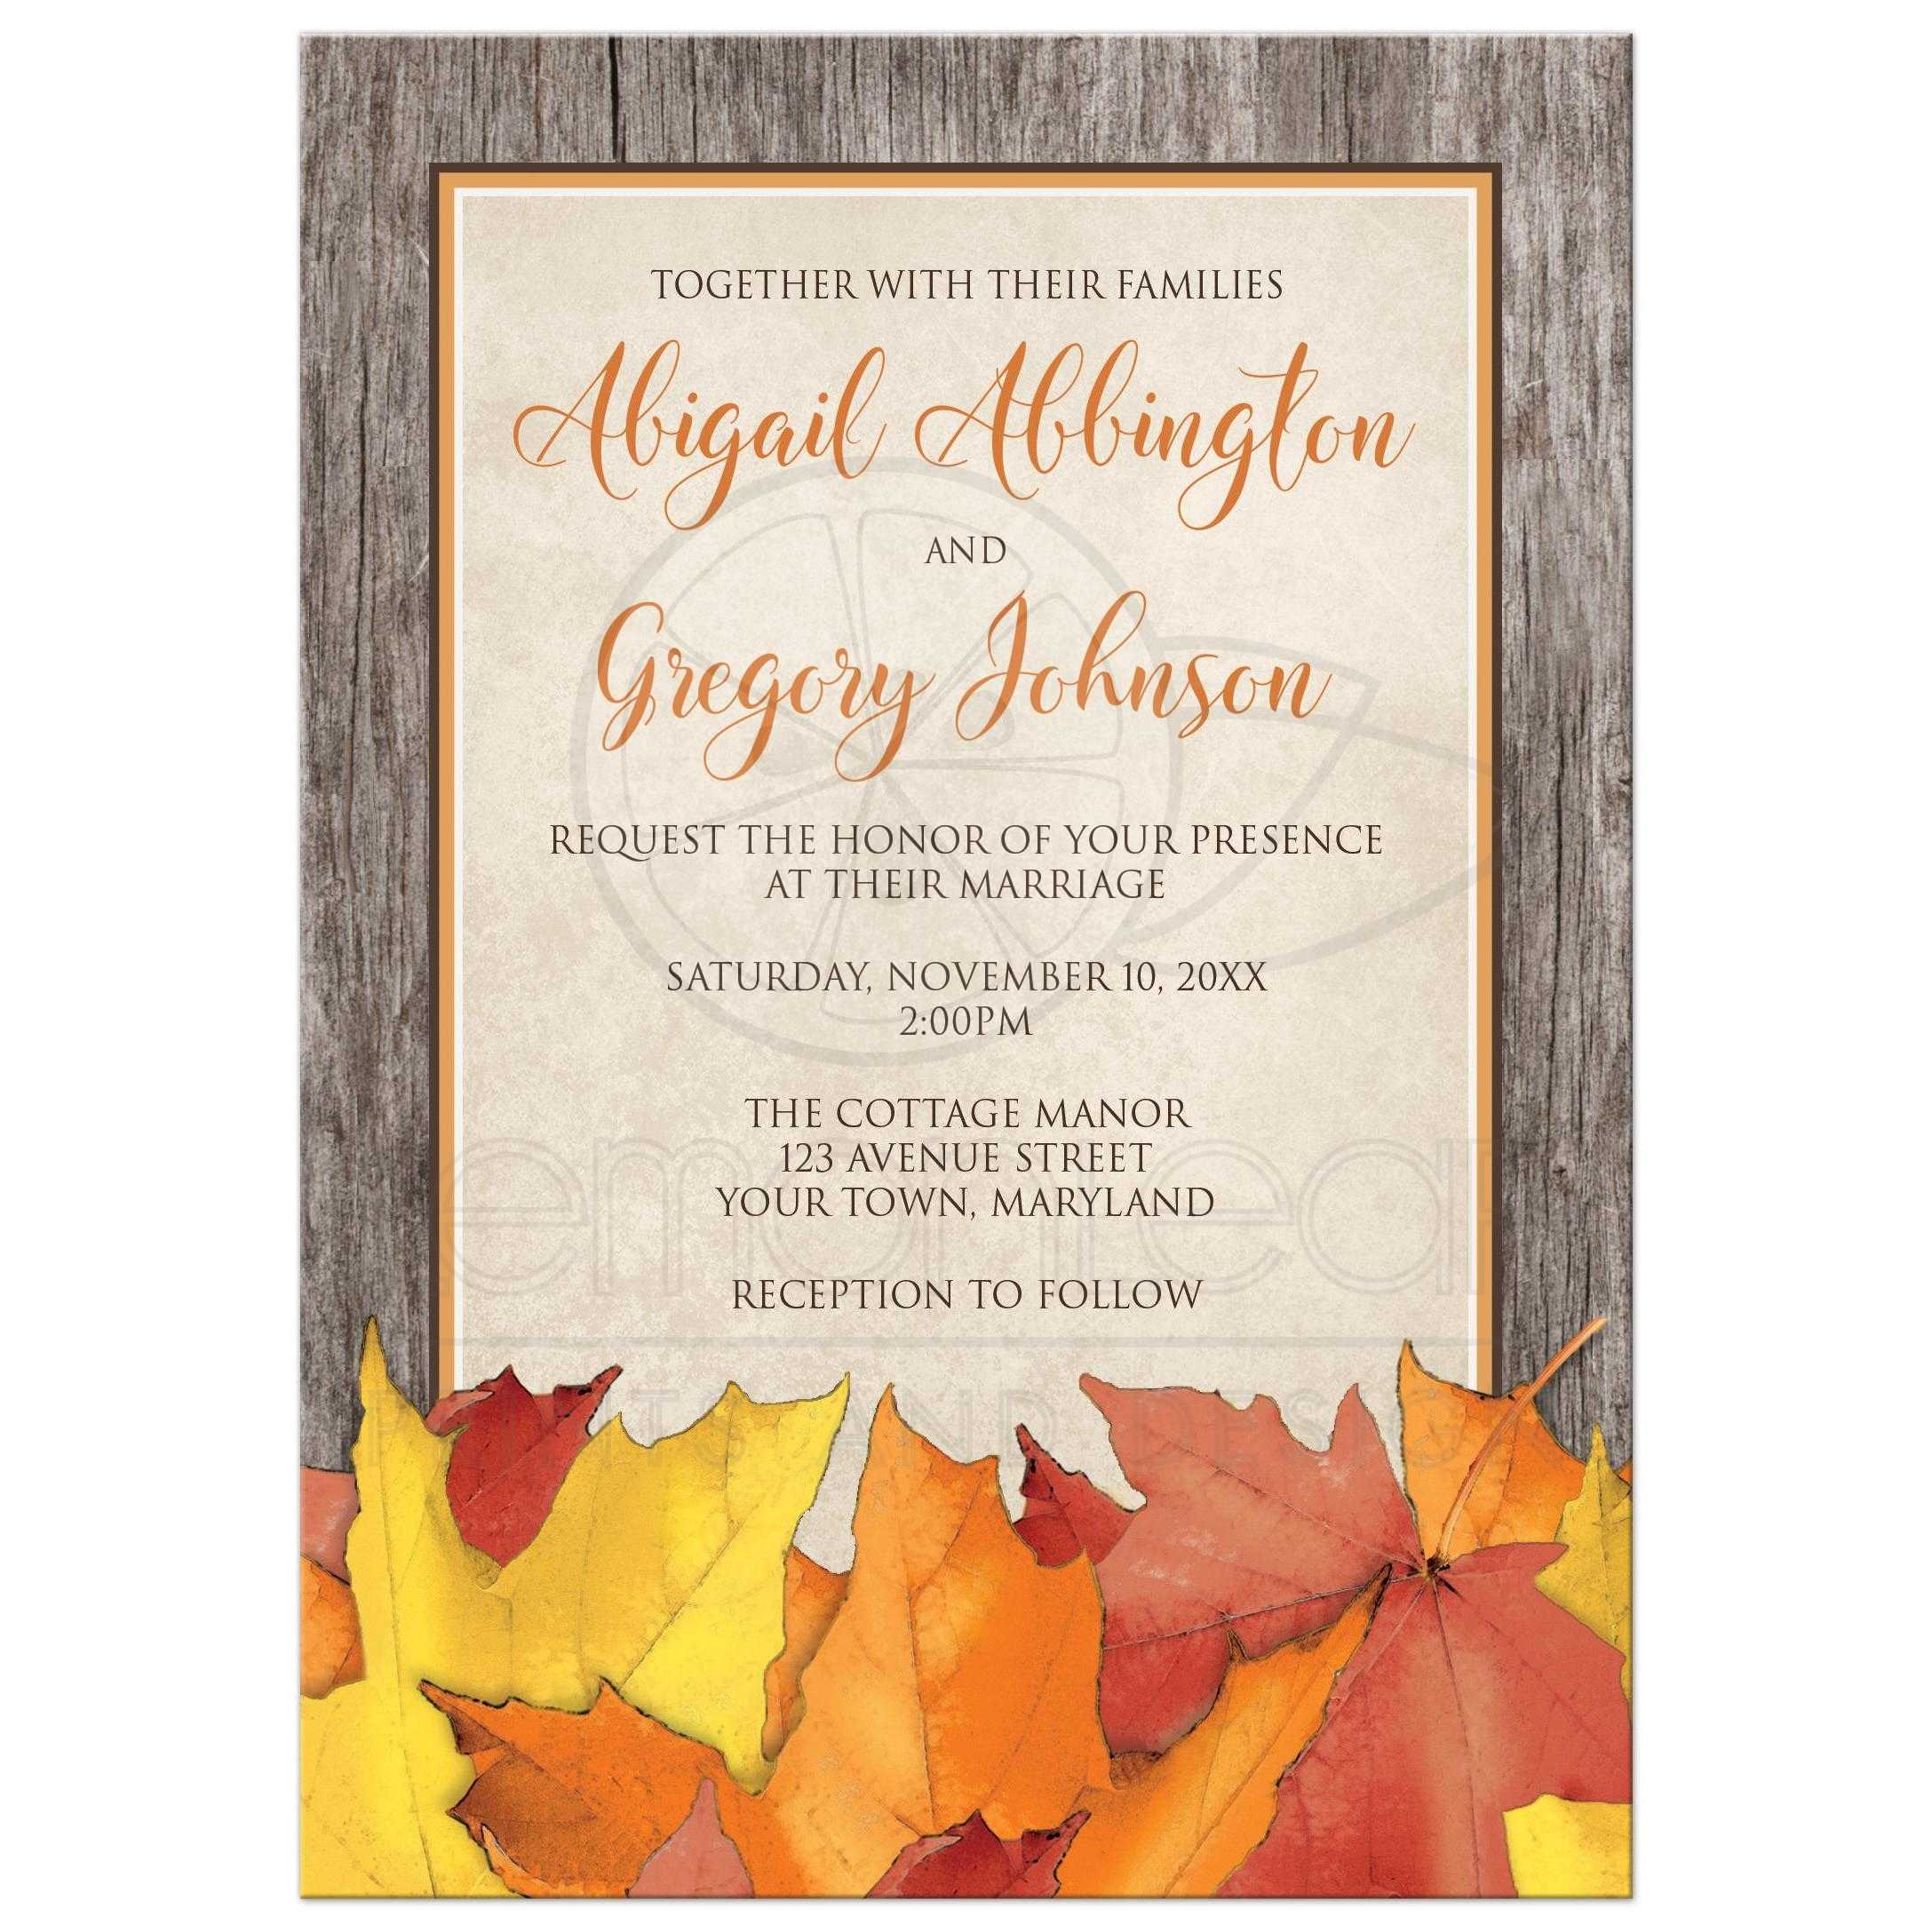 Invitations - Fall Rustic Wood and Leaves